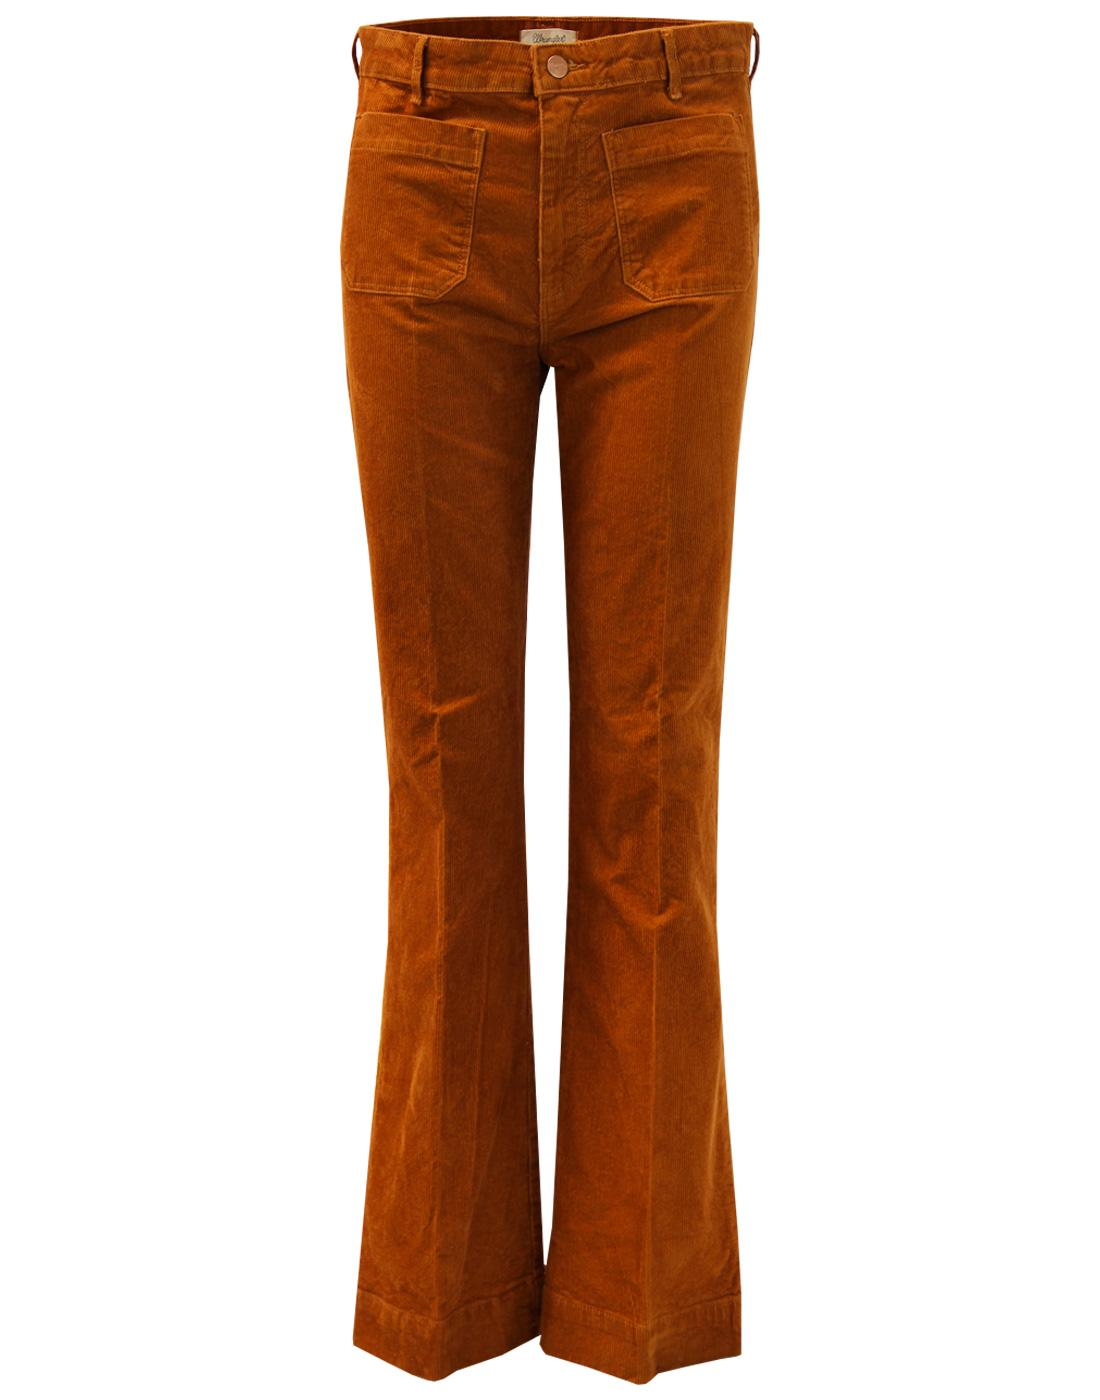 44ee9031 WRANGLER Retro 70s Vintage Stretch Cord Flared Trousers Copper